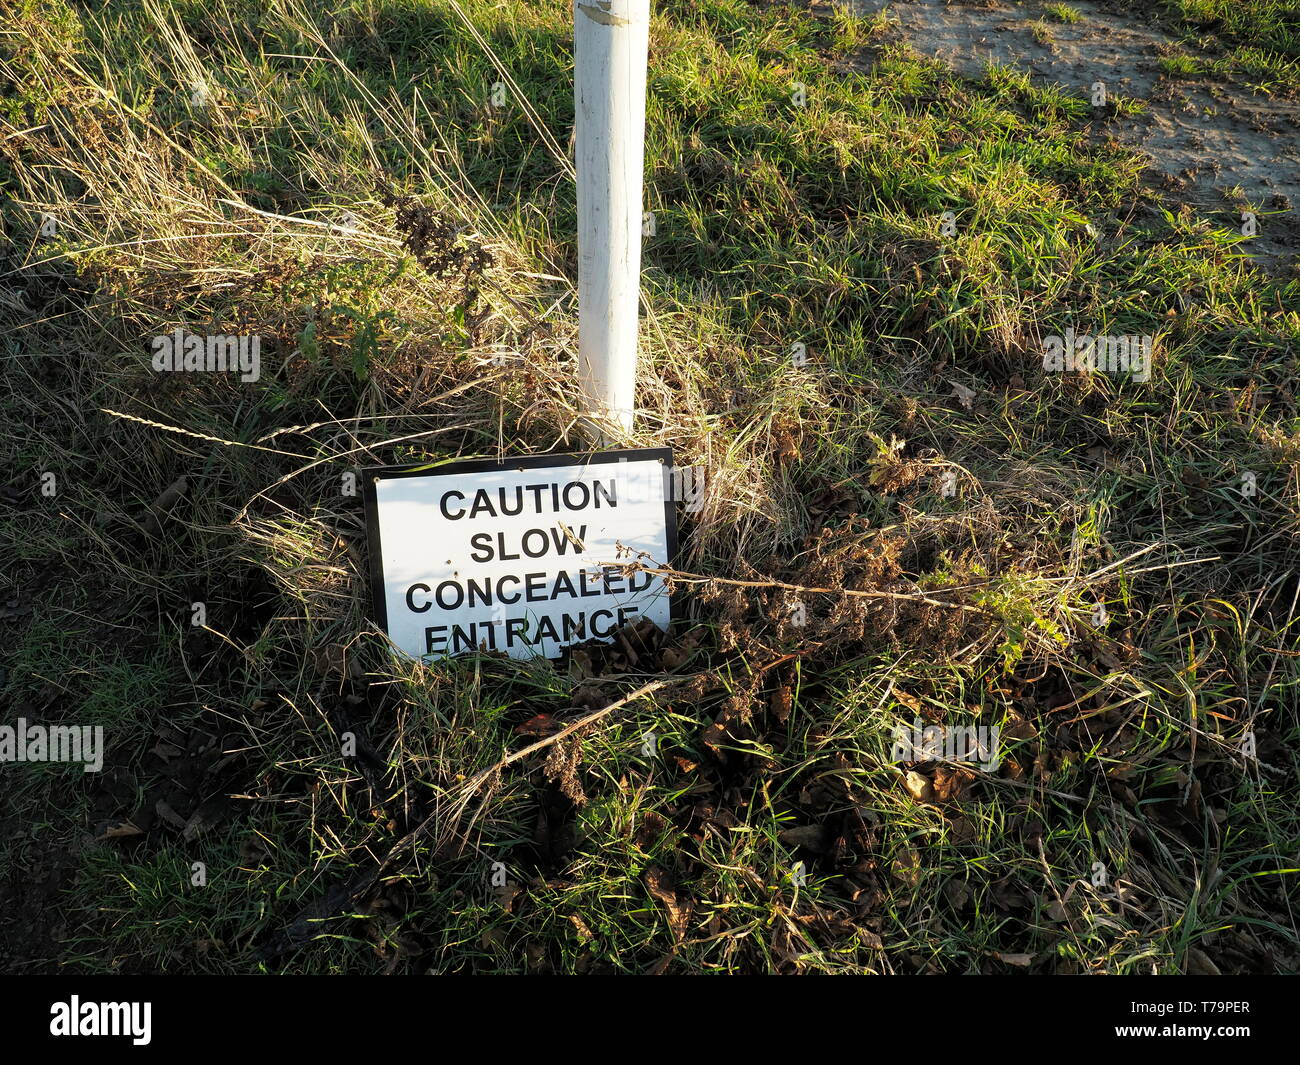 Sign stating 'Caution Slow Concealed Entrance' fallen on the verge by a field. - Stock Image